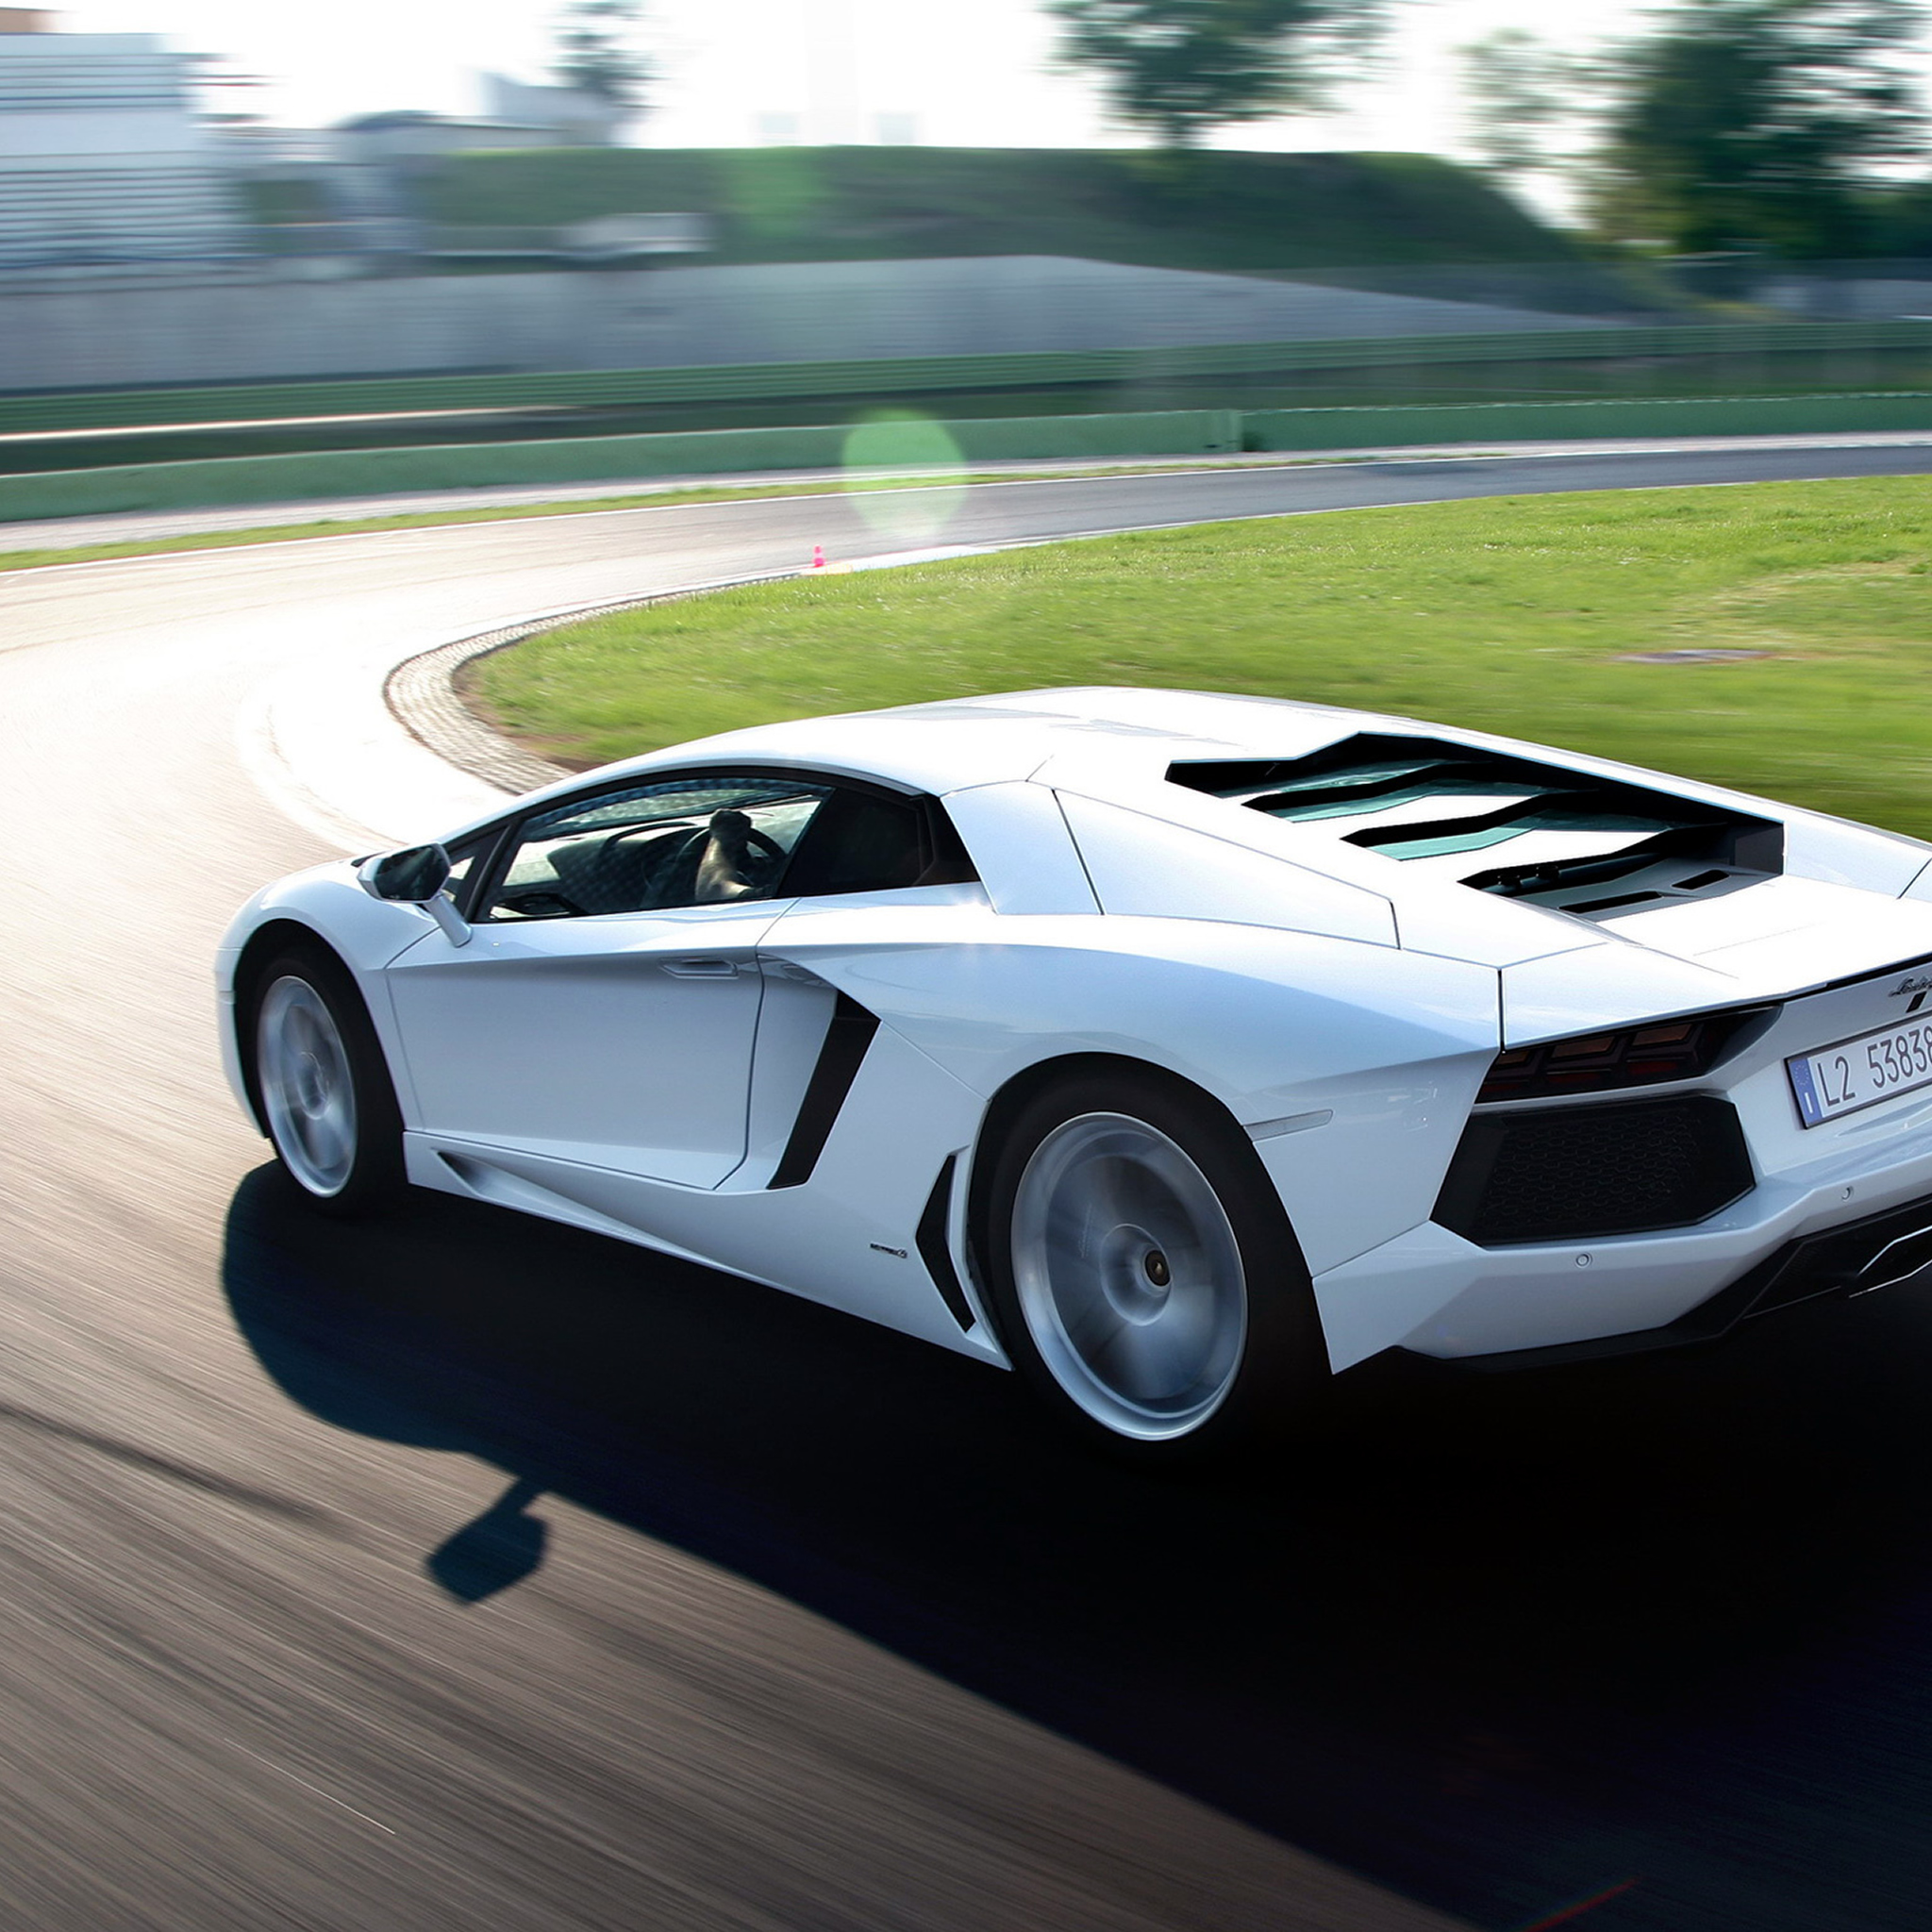 Lamborghini Wallpaper Ipad: IPad Wallpaper For IPhone 11, Pro